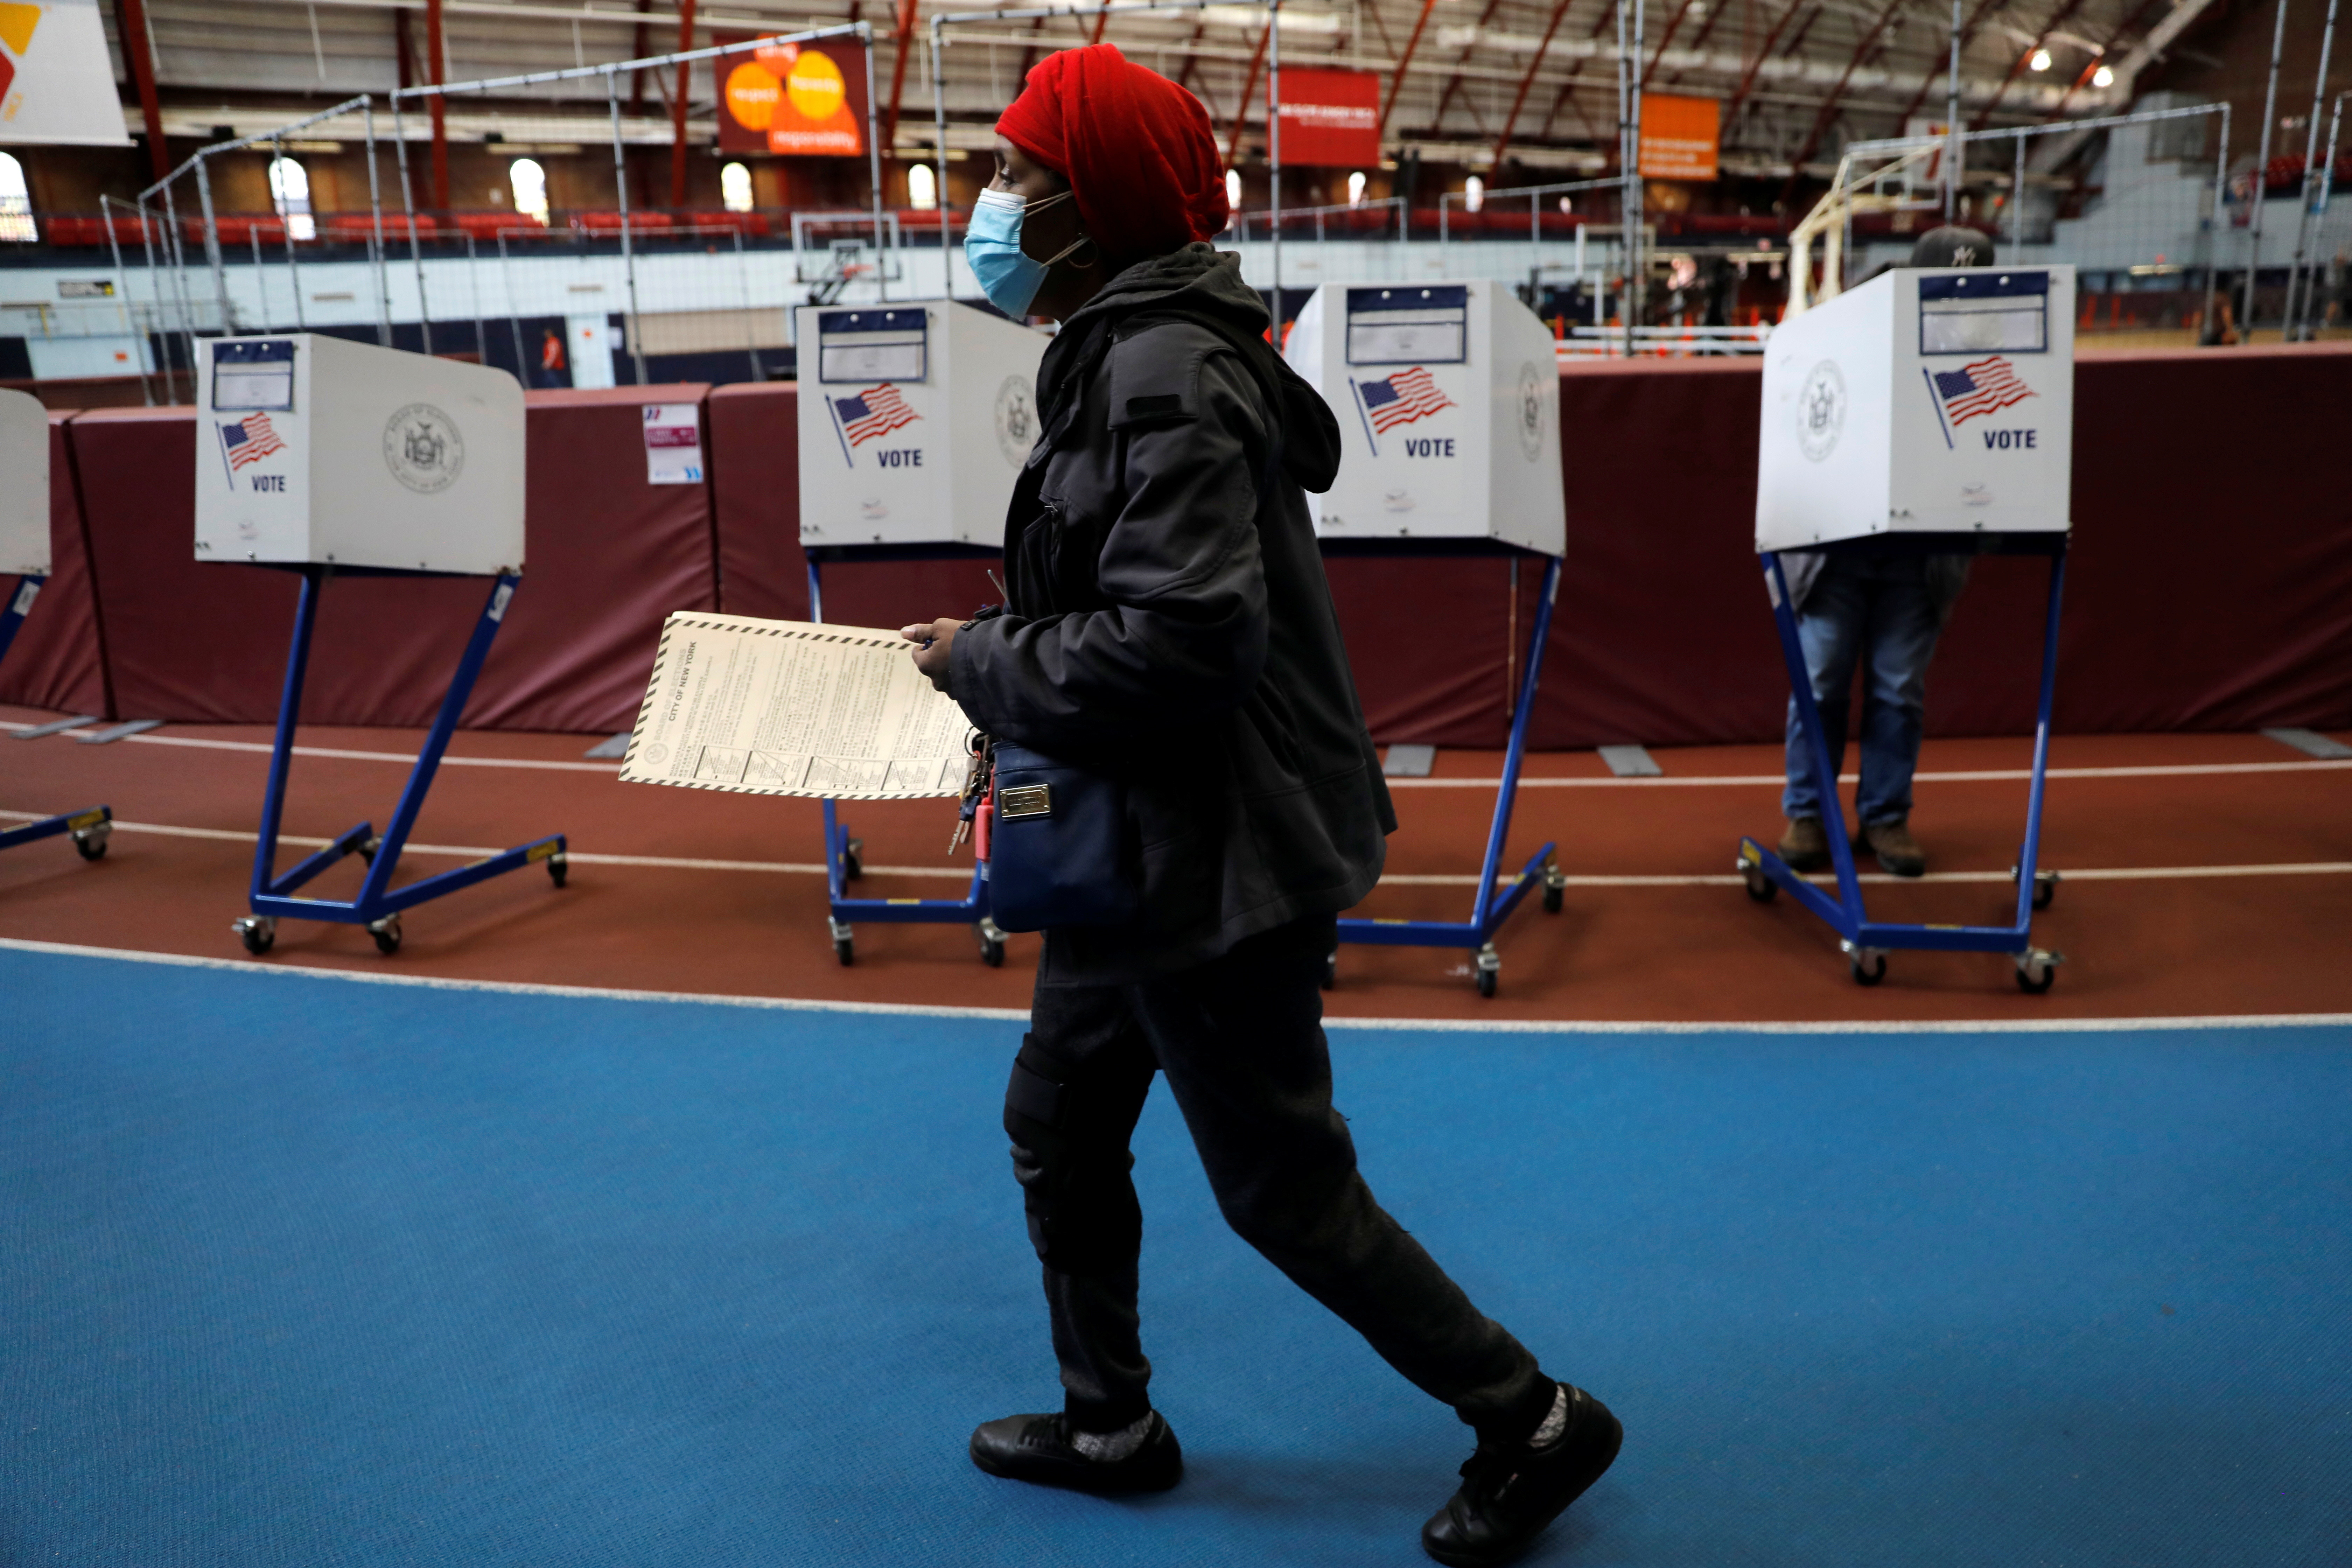 A woman carries her ballot to fill it out in a voting booth at the Brooklyn Armory after waiting several hours in line with hundreds of other voters during early voting in the Brooklyn borough of New York City, New York, U.S., October 27, 2020. REUTERS/Mike Segar - RC2ARJ9CB9OF